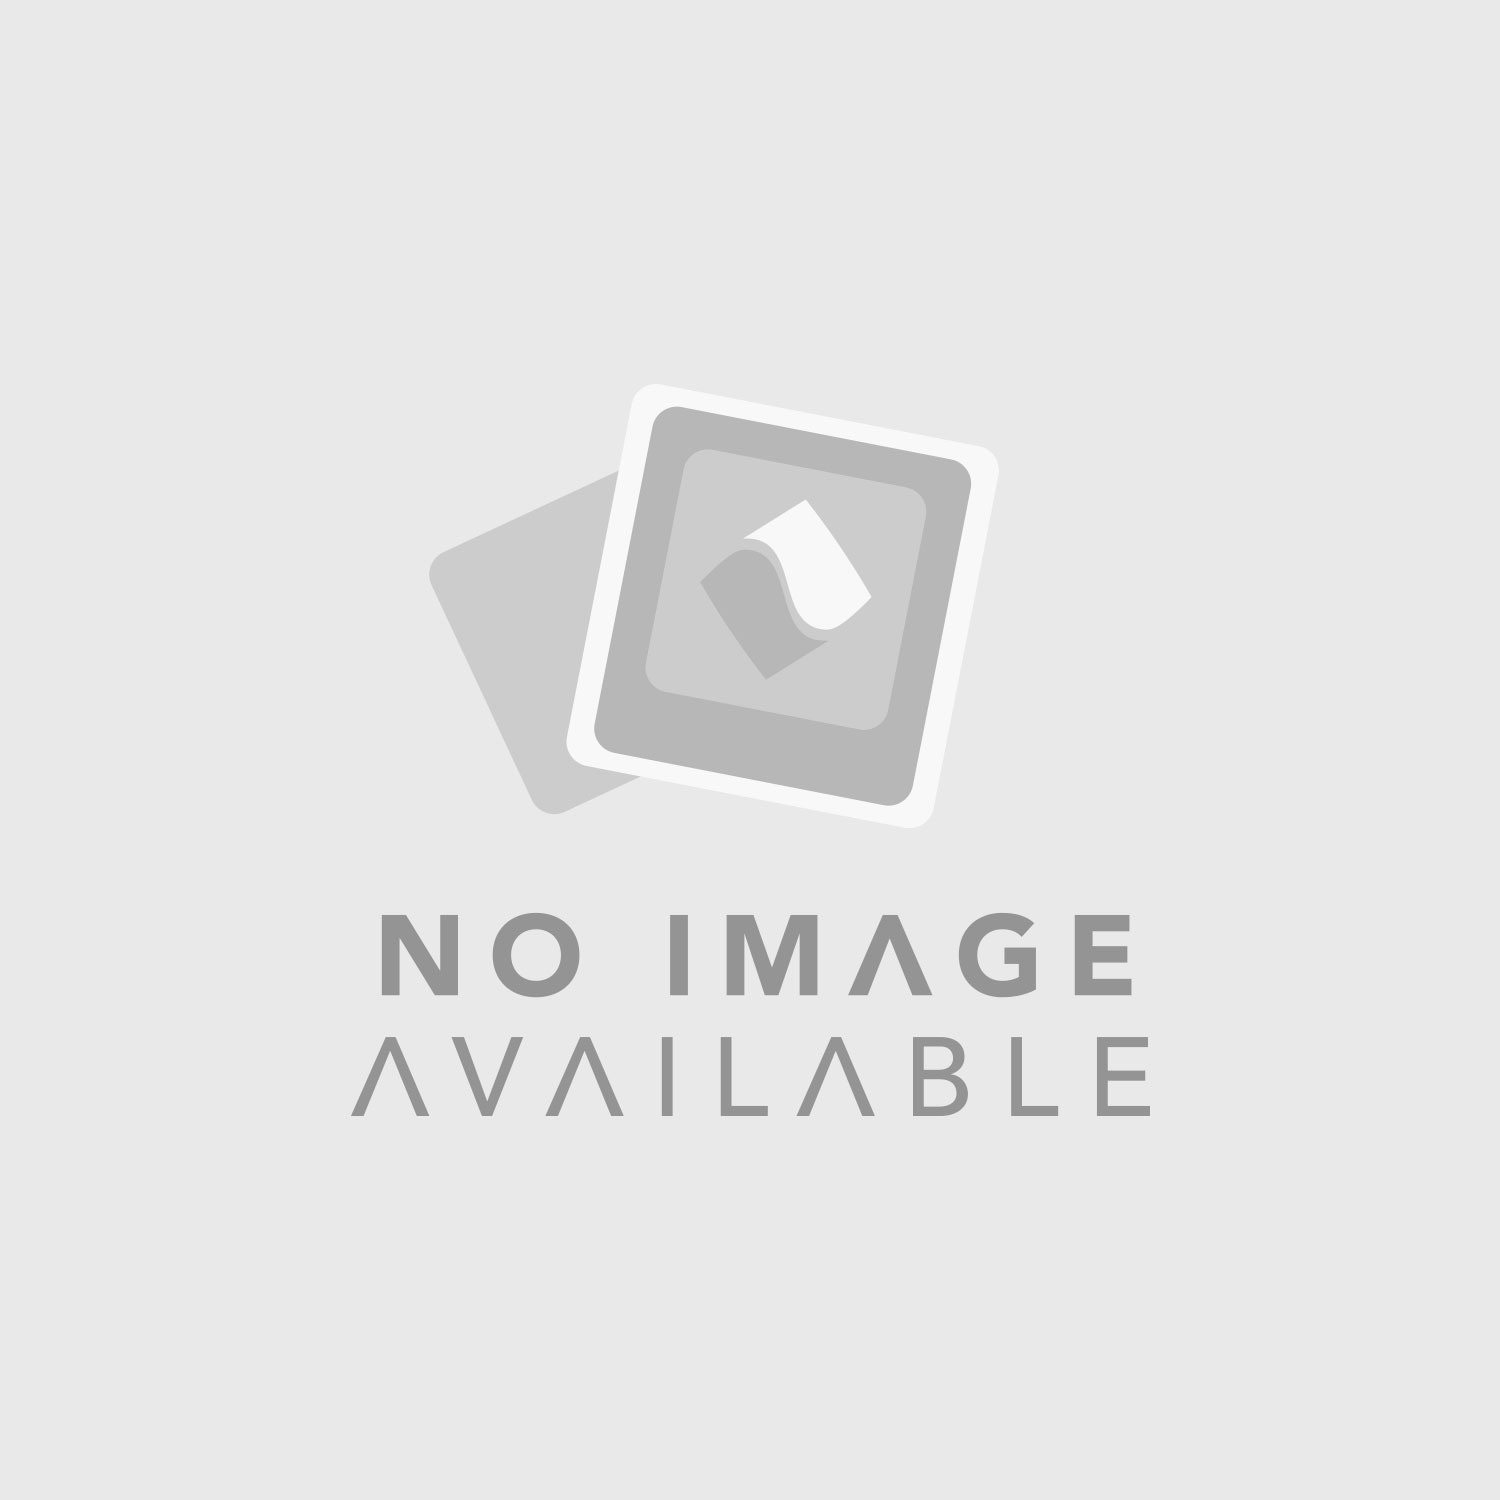 Shure SRH240A Closed-Back Over-Ear Headphones (New Packaging)